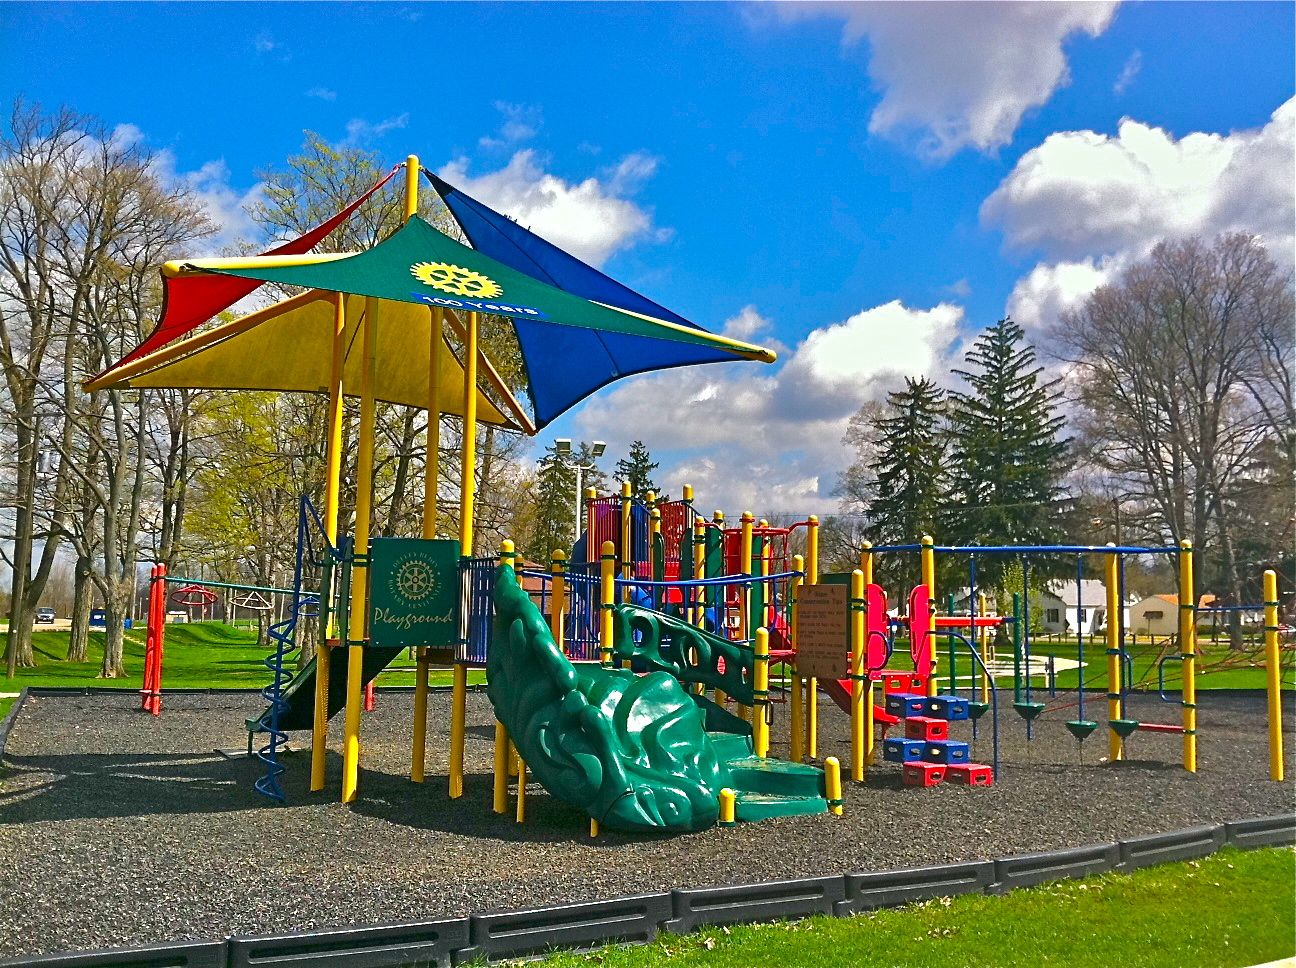 Mount Vernon Ohio Riverside Playground Photo by Sam Miller